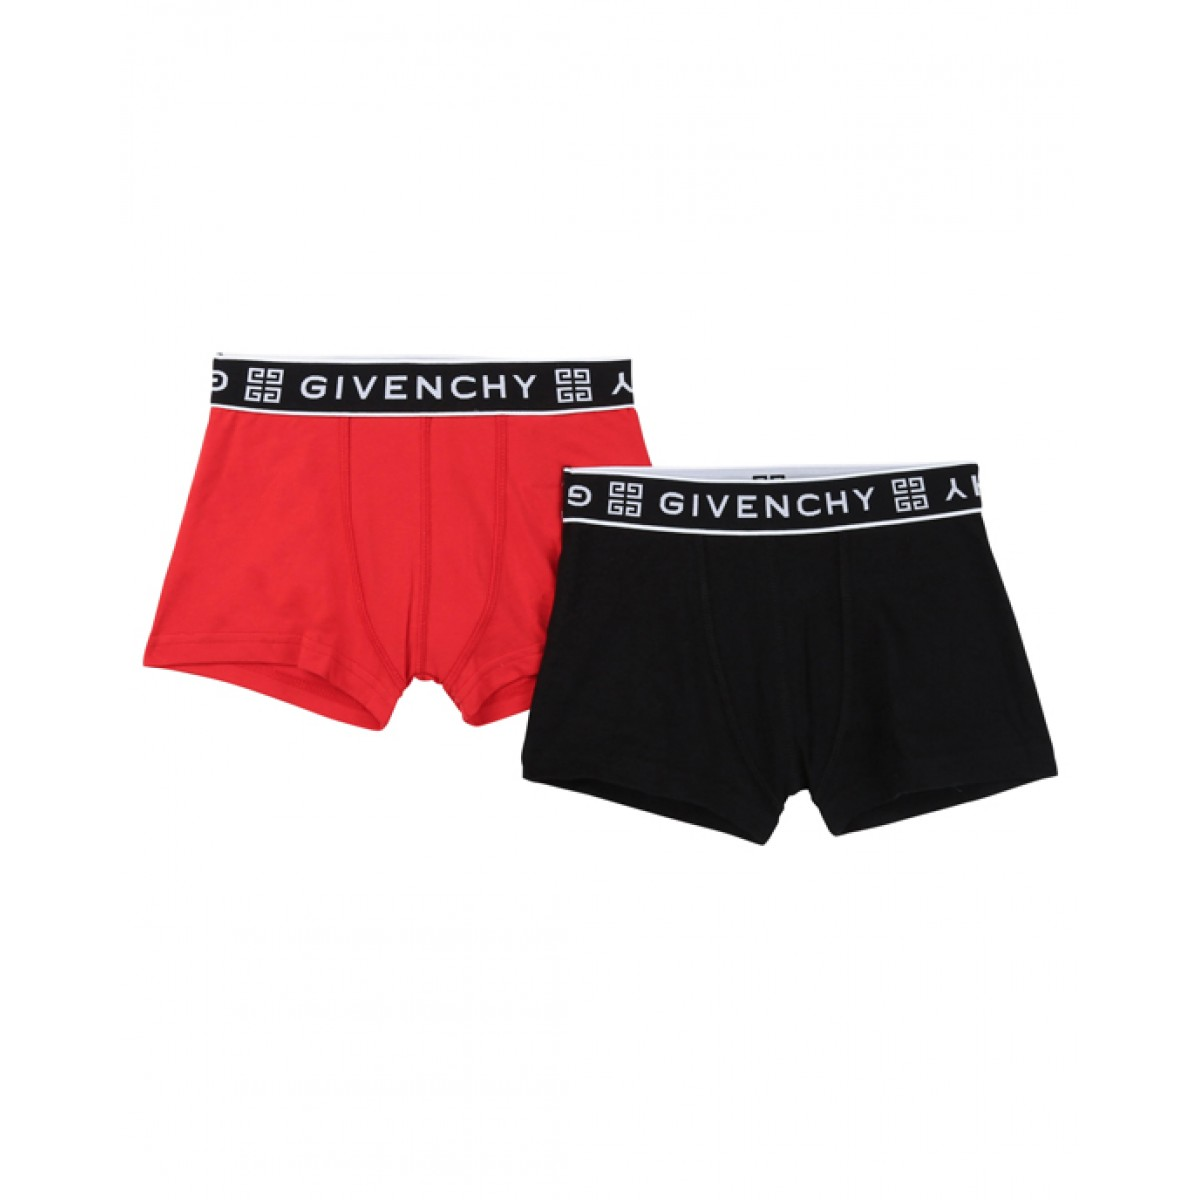 GIVENCHY 2 Pack boxers